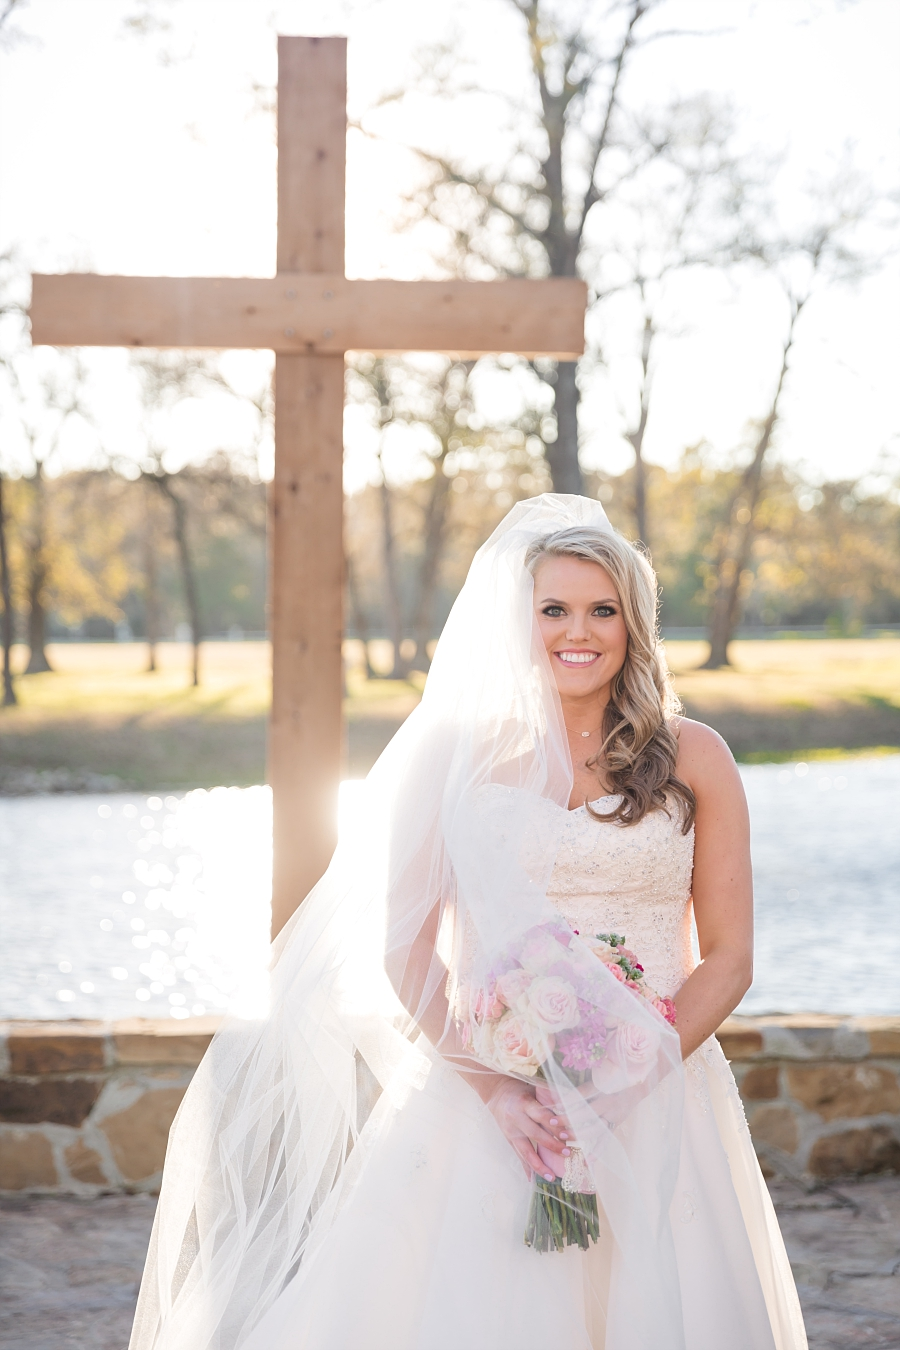 Stacy-Anderson-Photography-Balmorhea-Tomball-Wedding-Photographer_0016.jpg